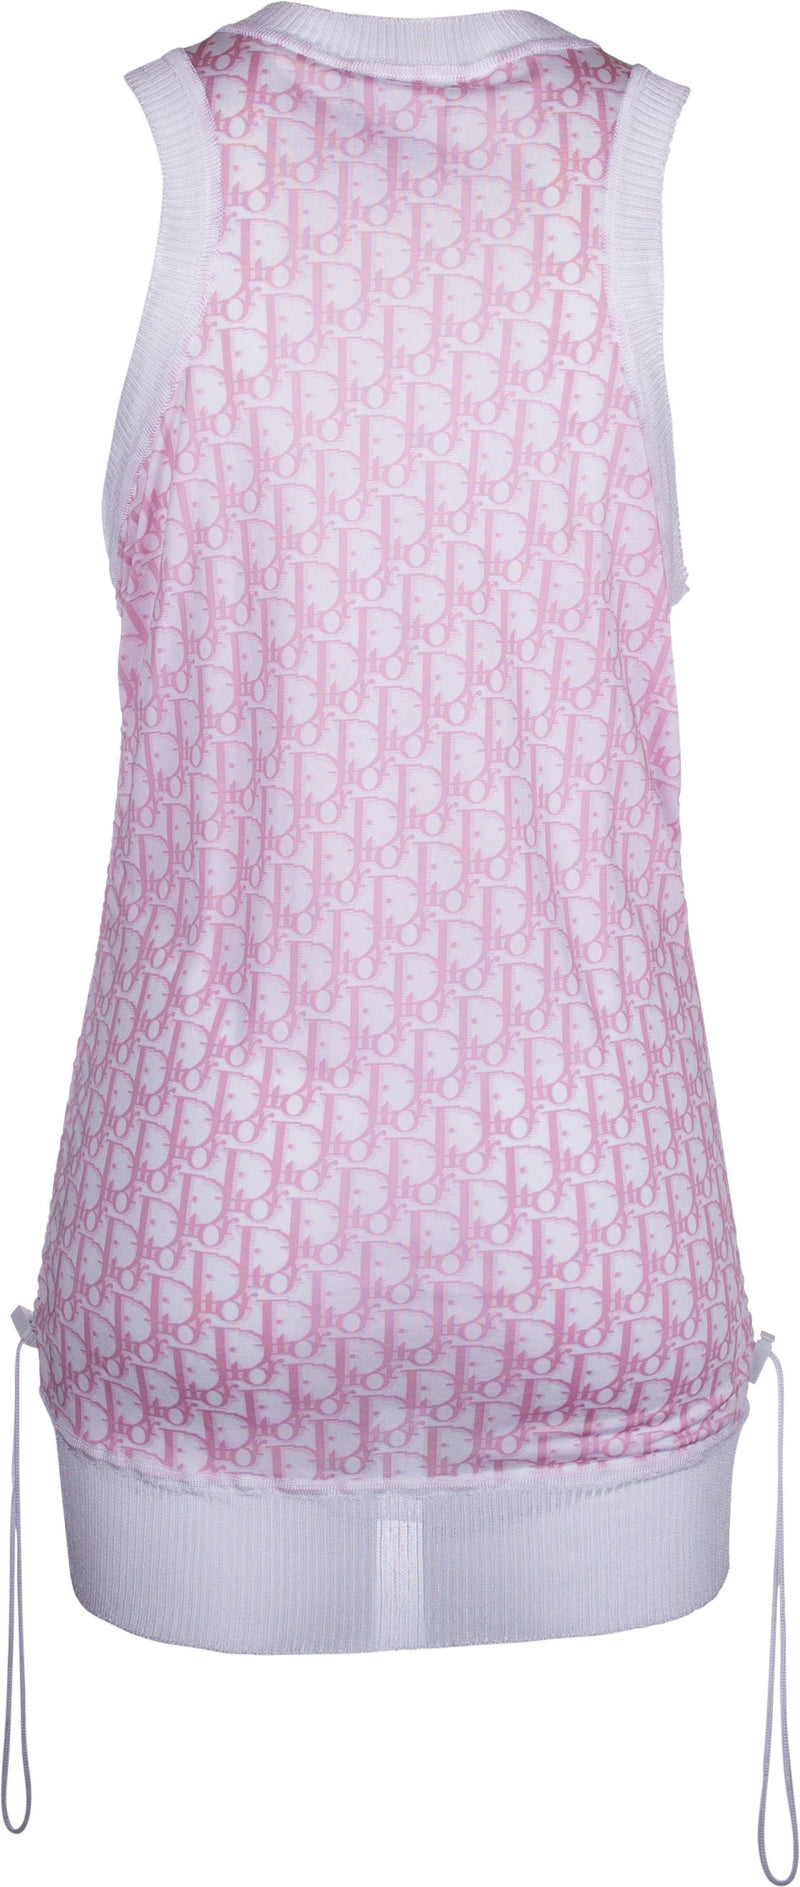 Christian Dior Diorissimo Girly Ruched Dress